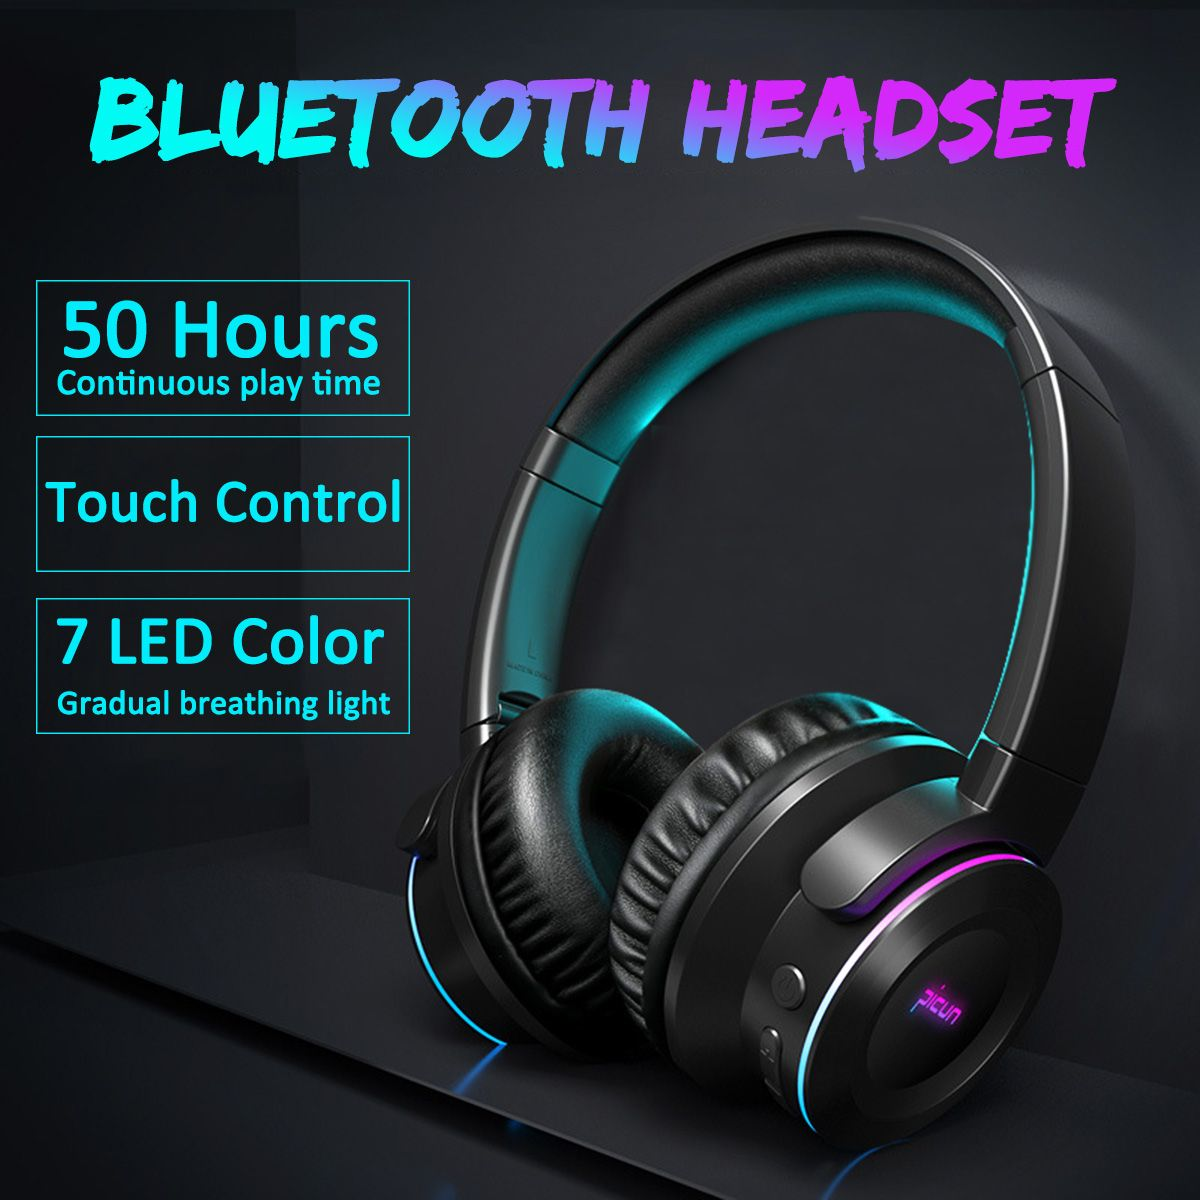 Wireless bluetooth Headphone LED Headset Touchs Control Foldable Adjustable Earphones 50Hours Music Time with Microphone /TFWireless bluetooth Headphone LED Headset Touchs Control Foldable Adjustable Earphones 50Hours Music Time with Microphone /TF